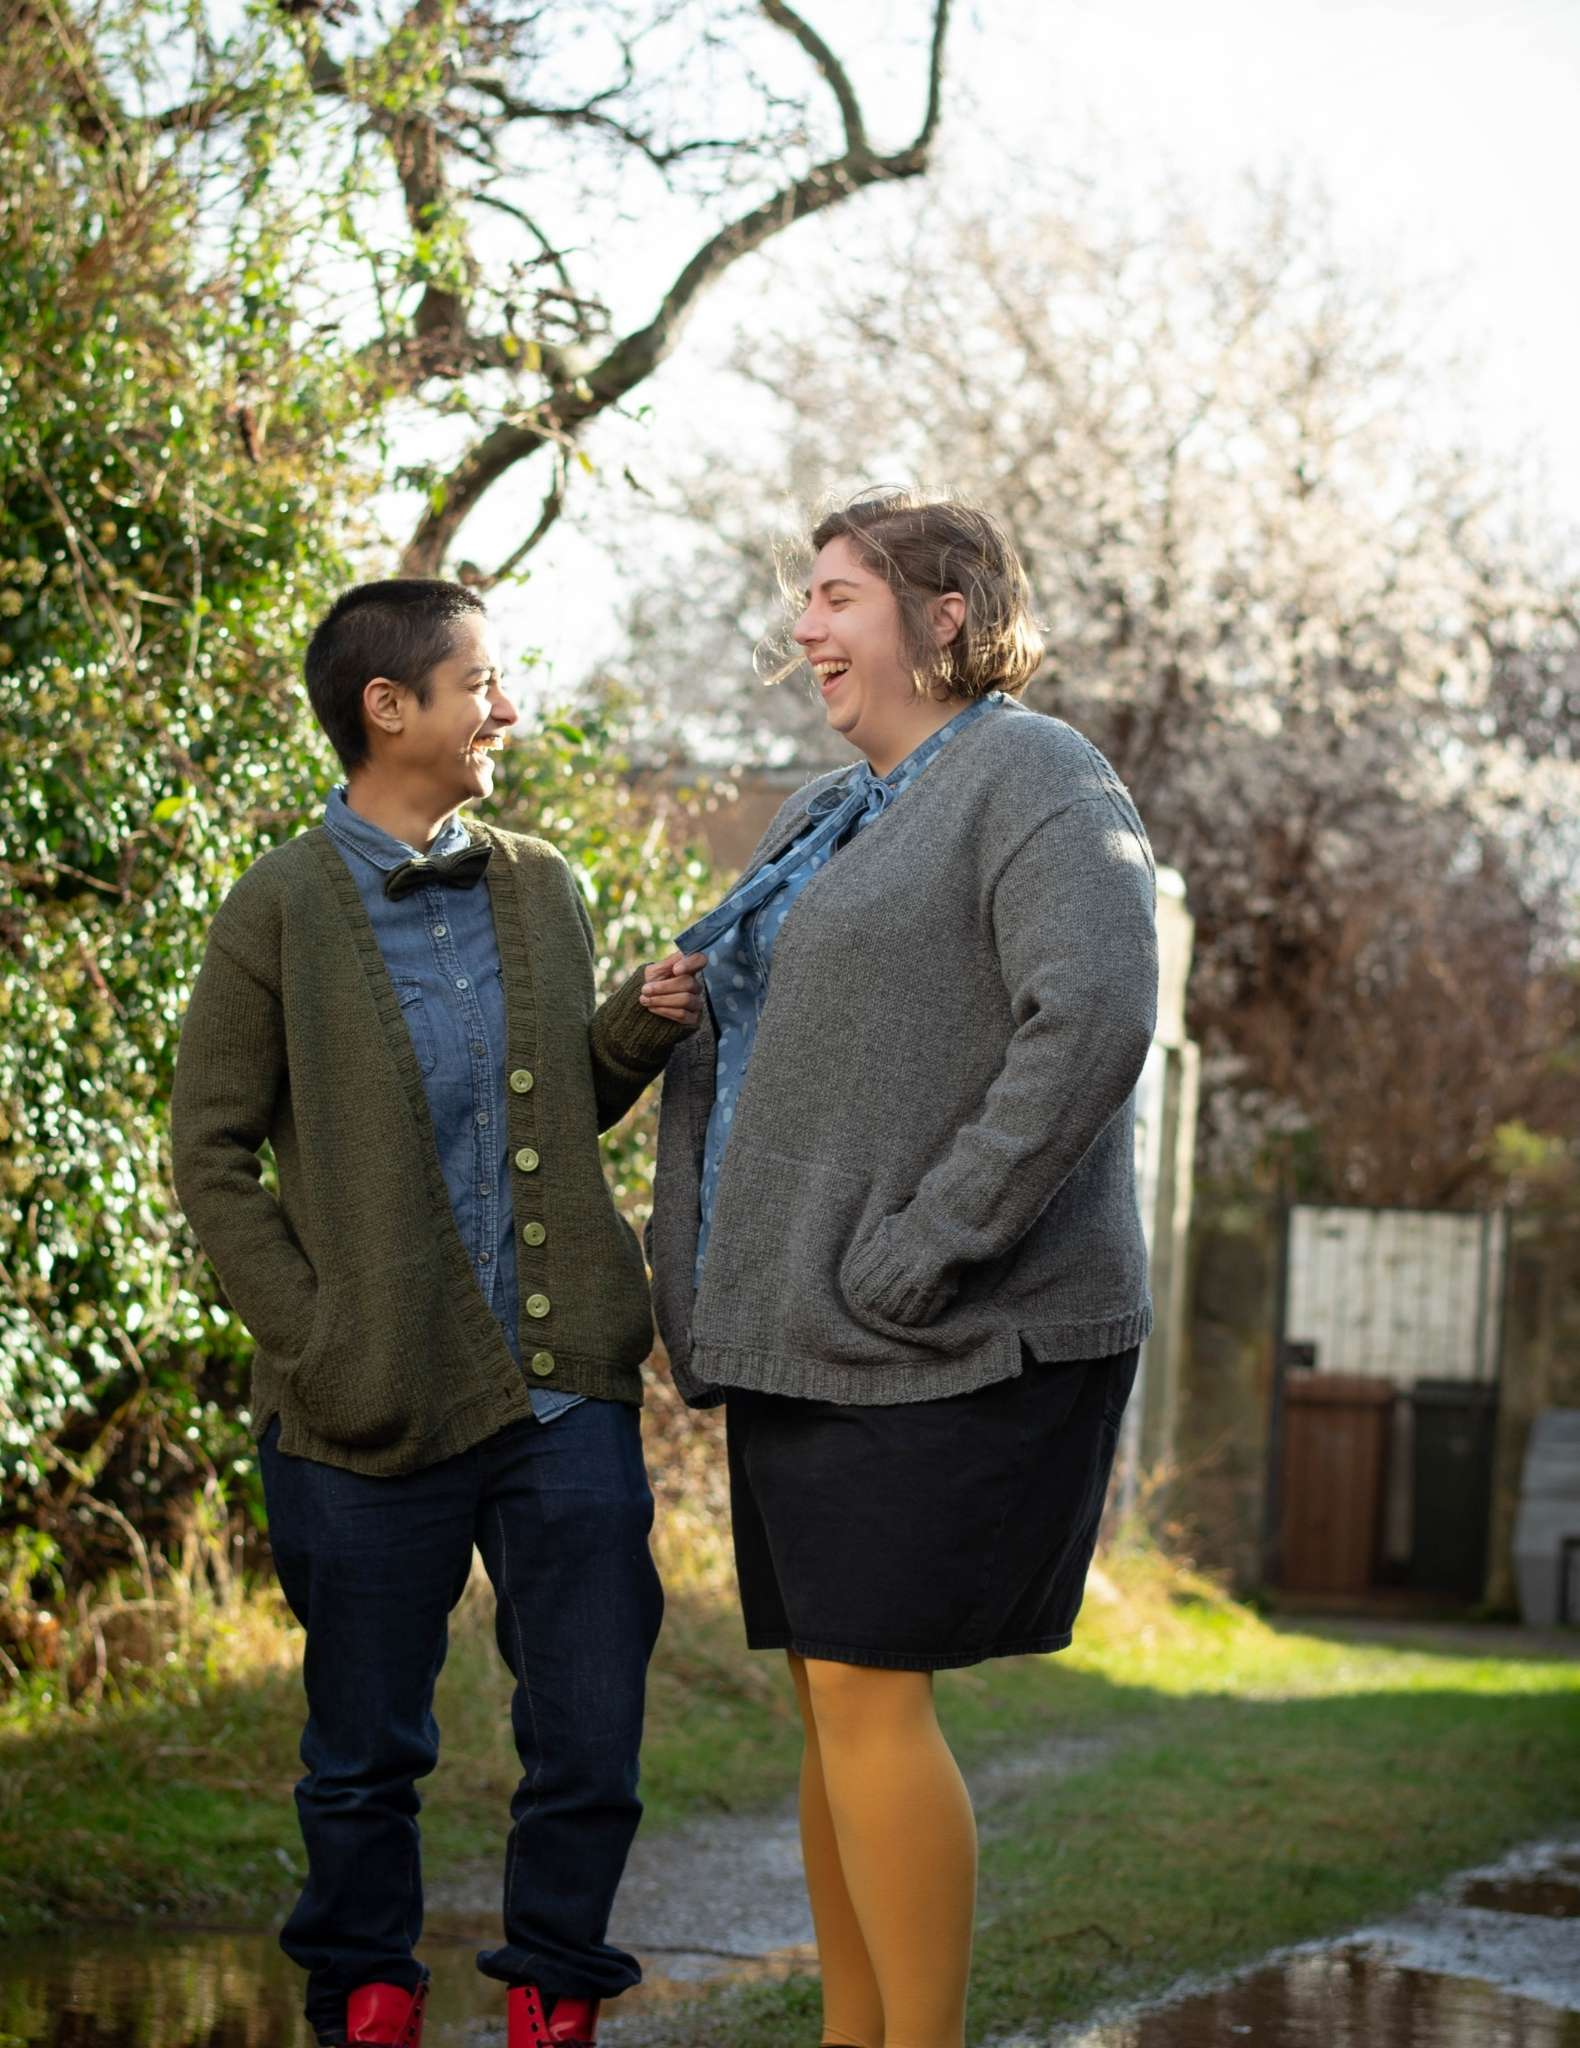 Two models wearing open, cardigans stand underneath some trees on a path through grass. They face each other and one holds the other's scarf, they are smiling at each other.